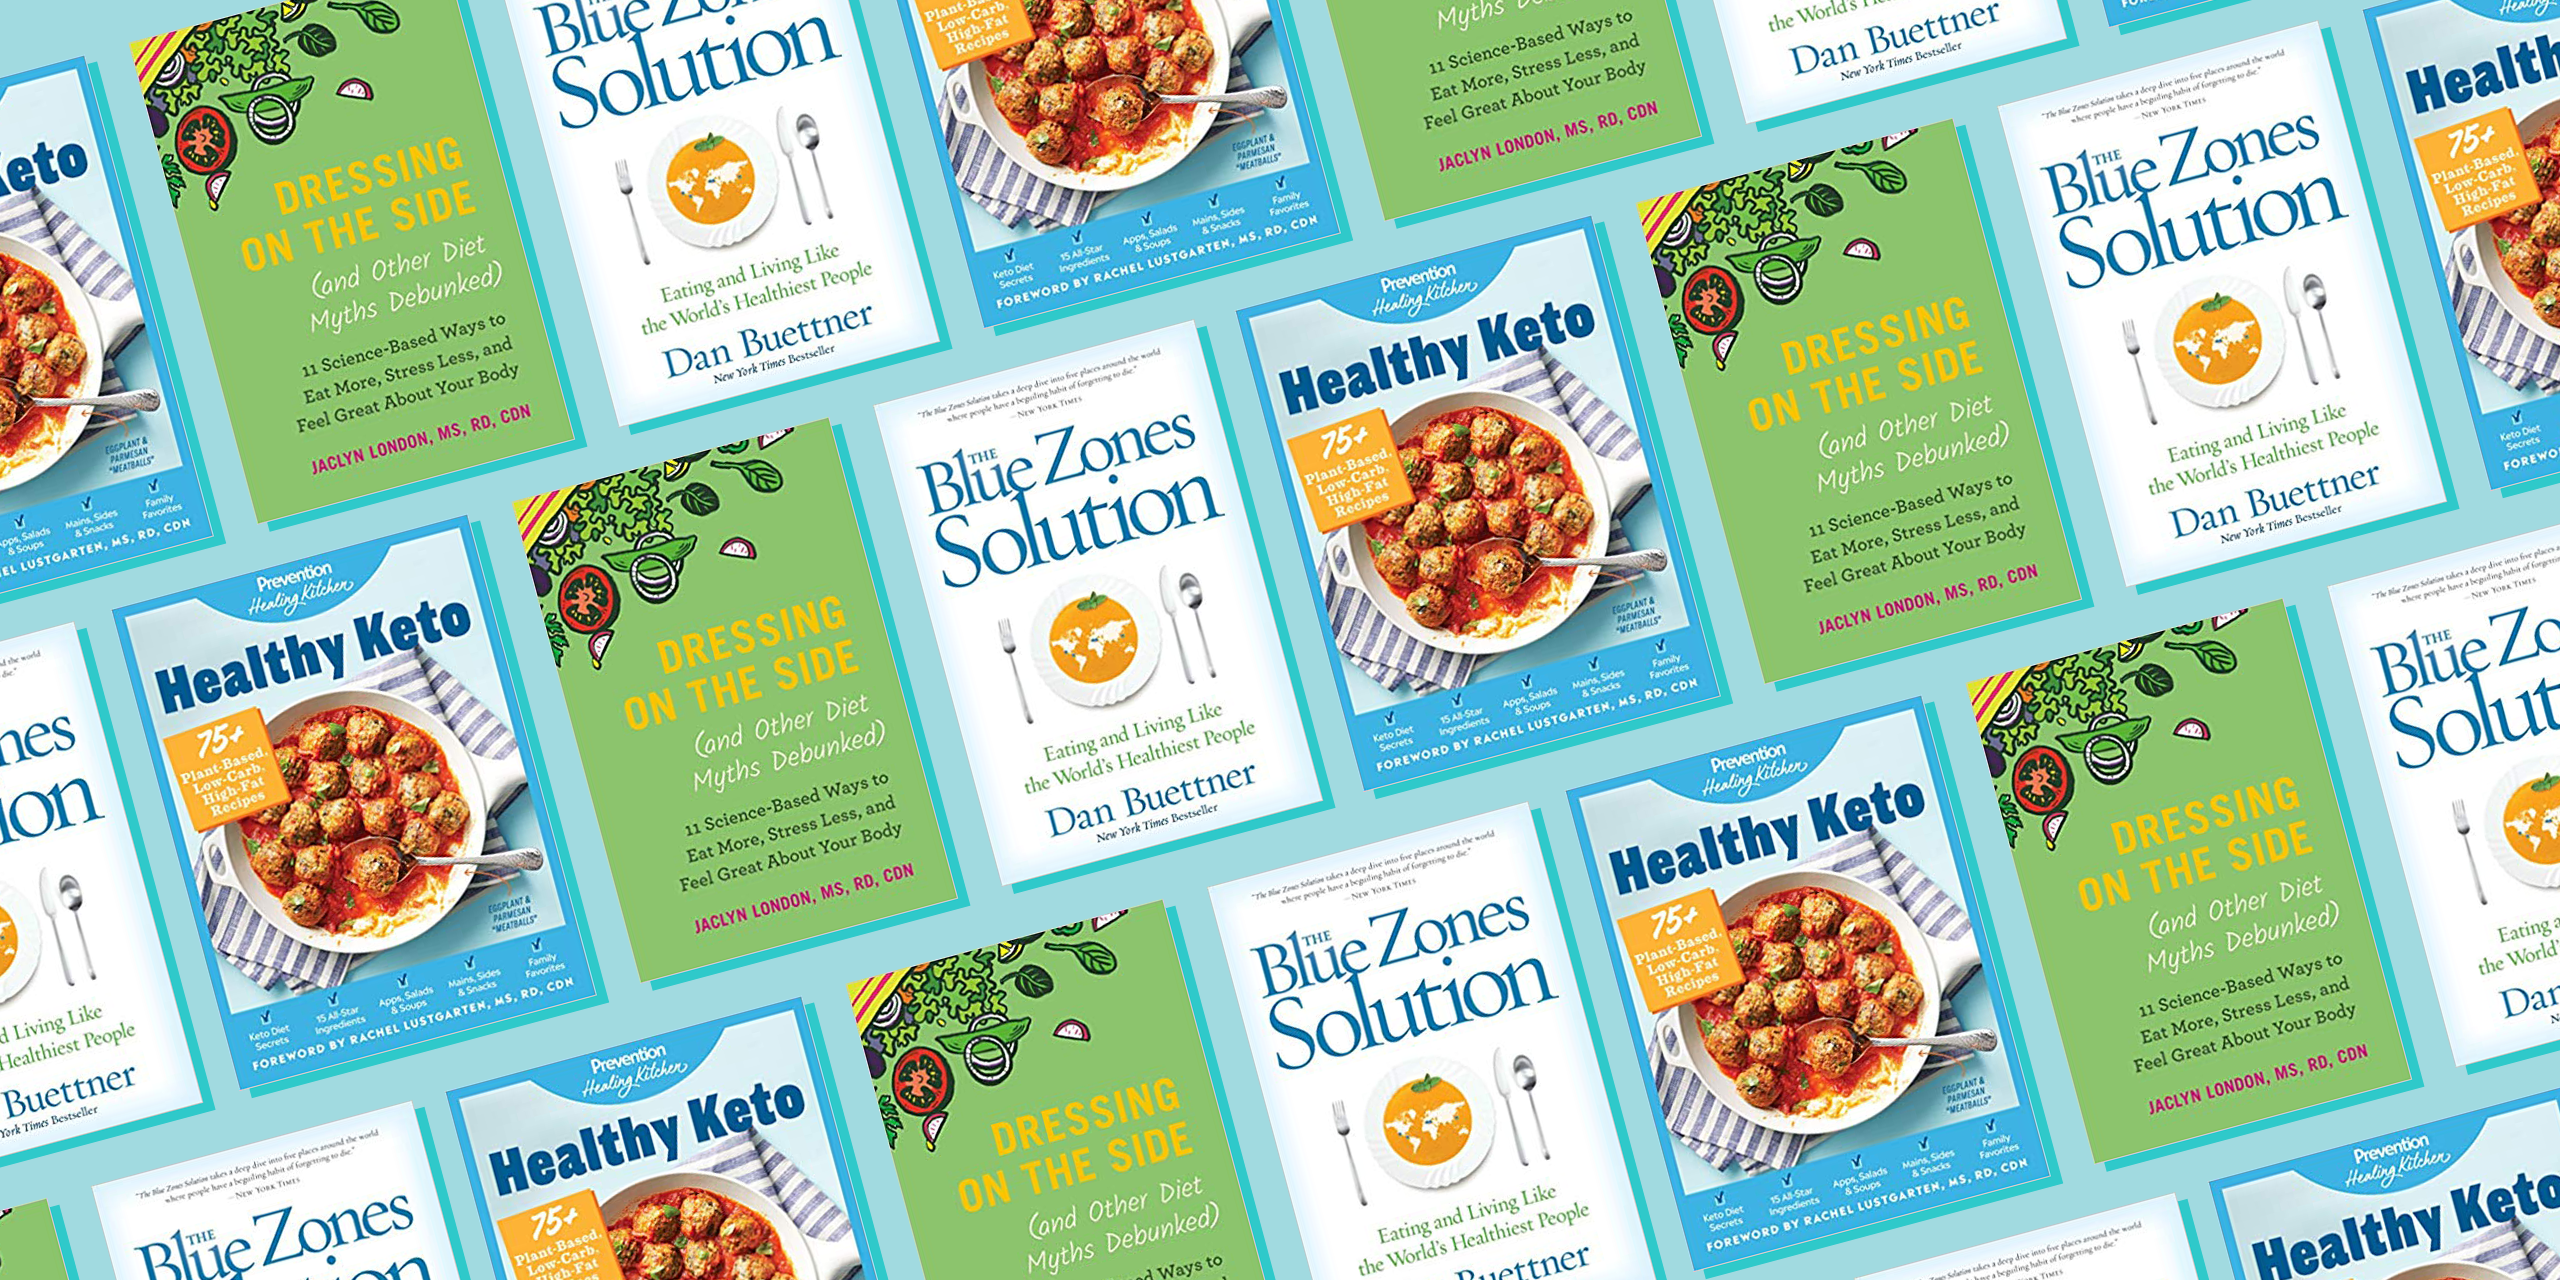 12 Best Weight Loss Books To Read In 2020 According To Dietitians